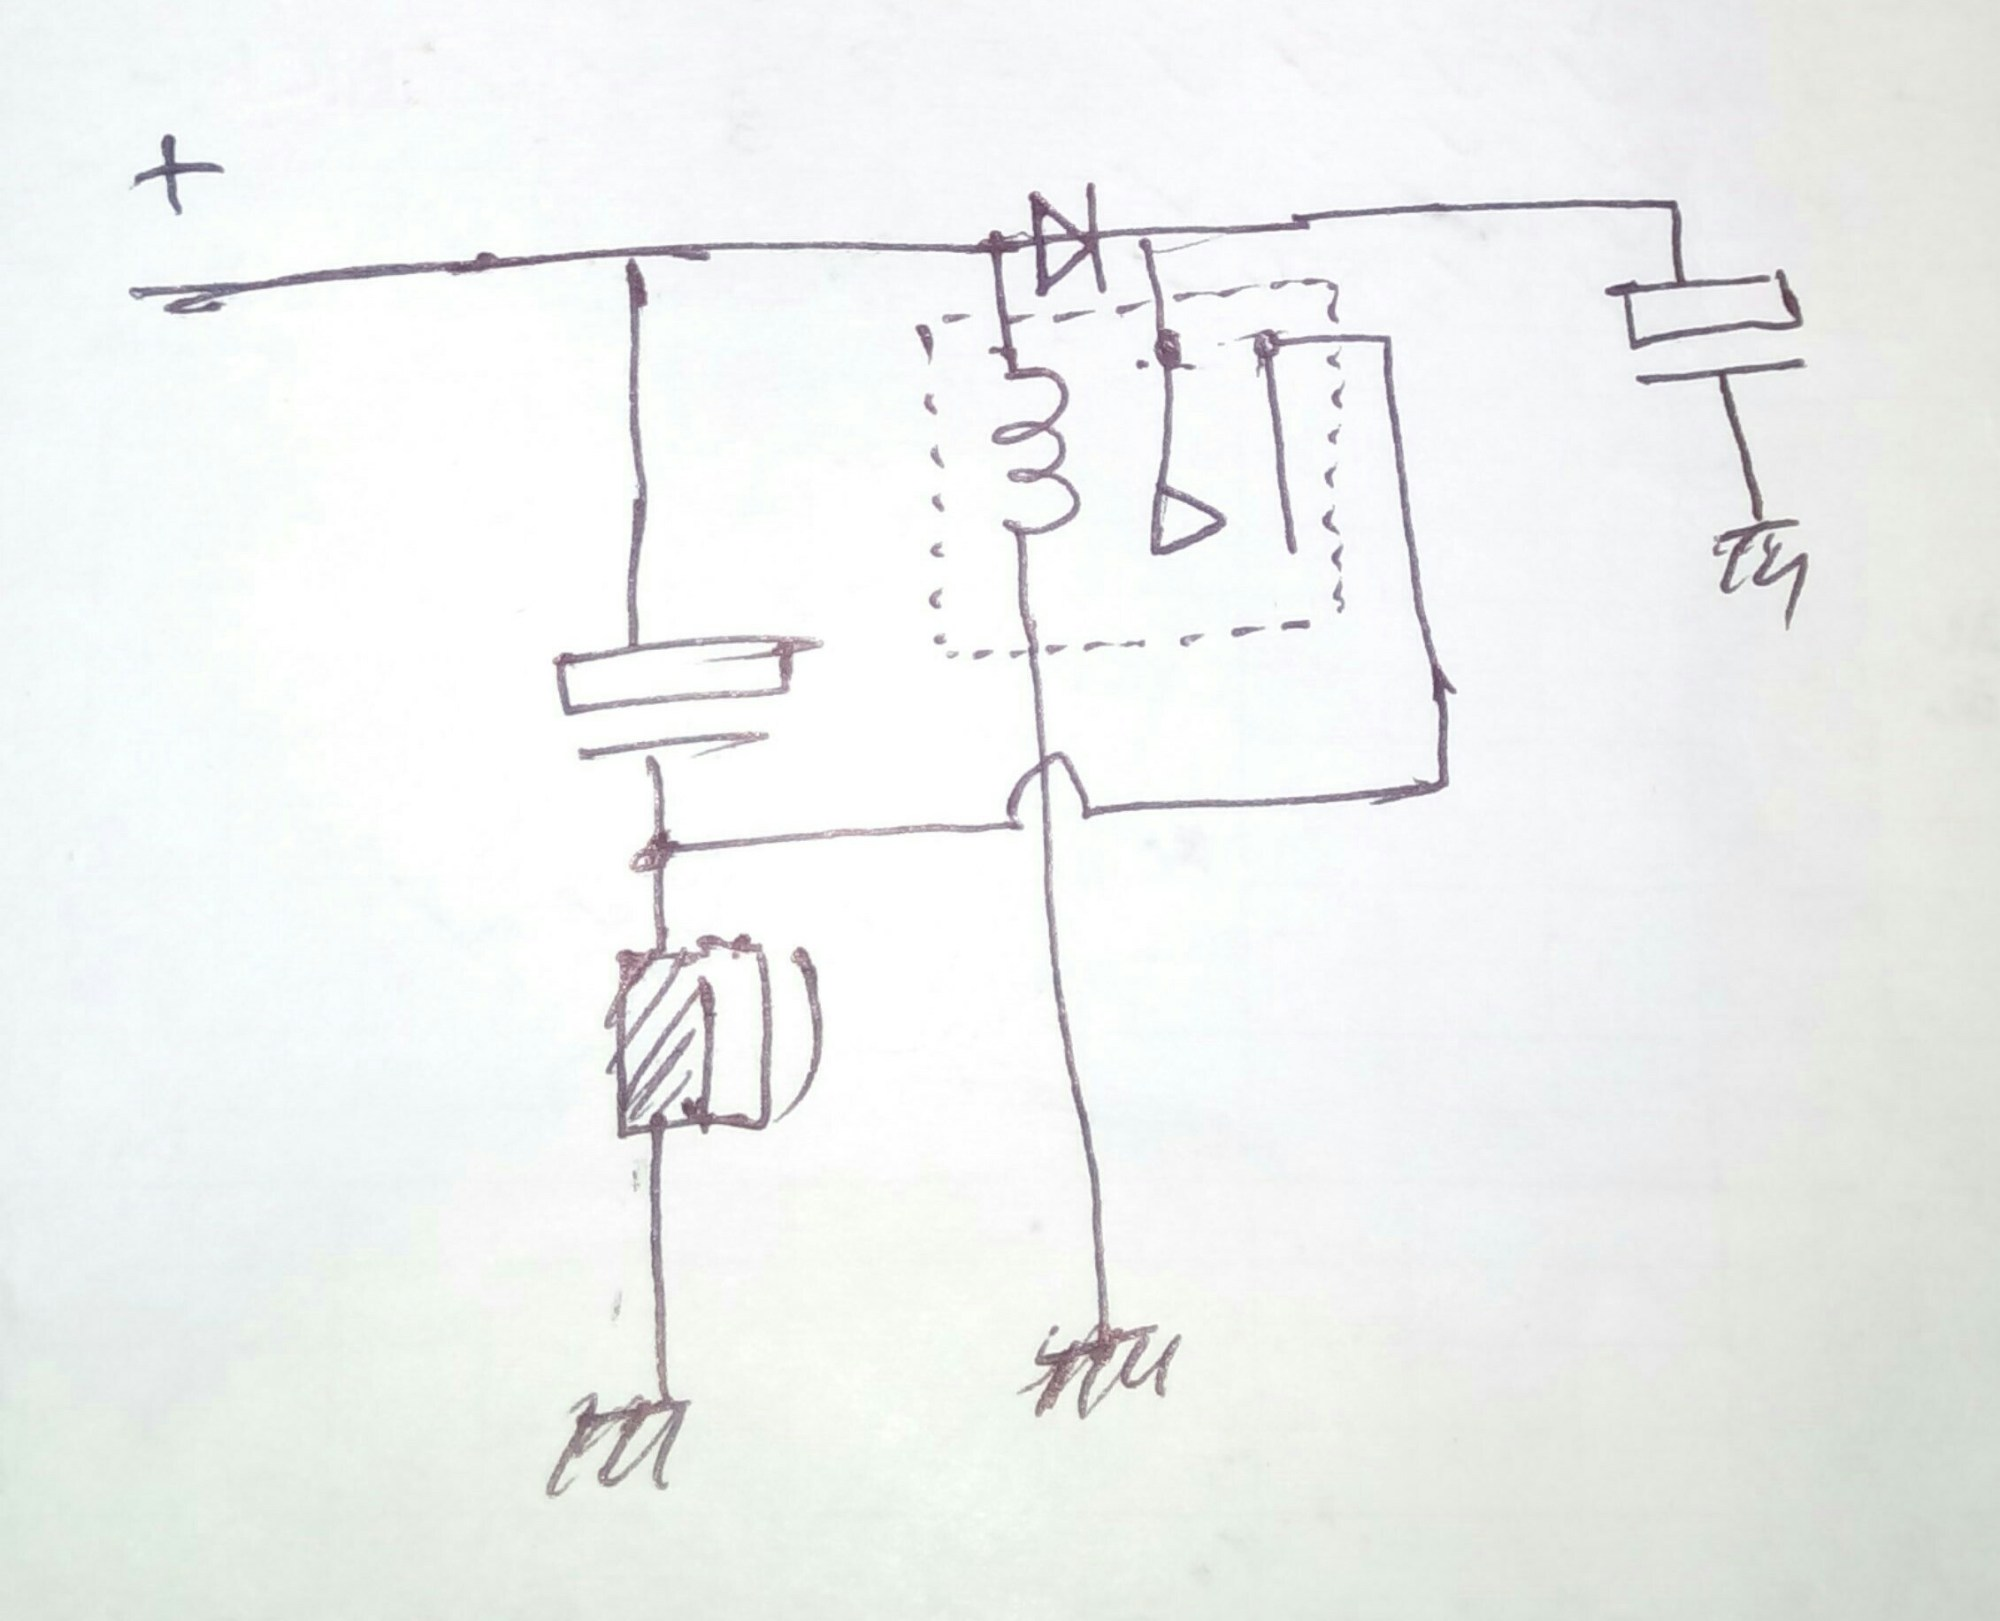 hight resolution of the hand drawn simple schematic explain the buzzer operation as intended